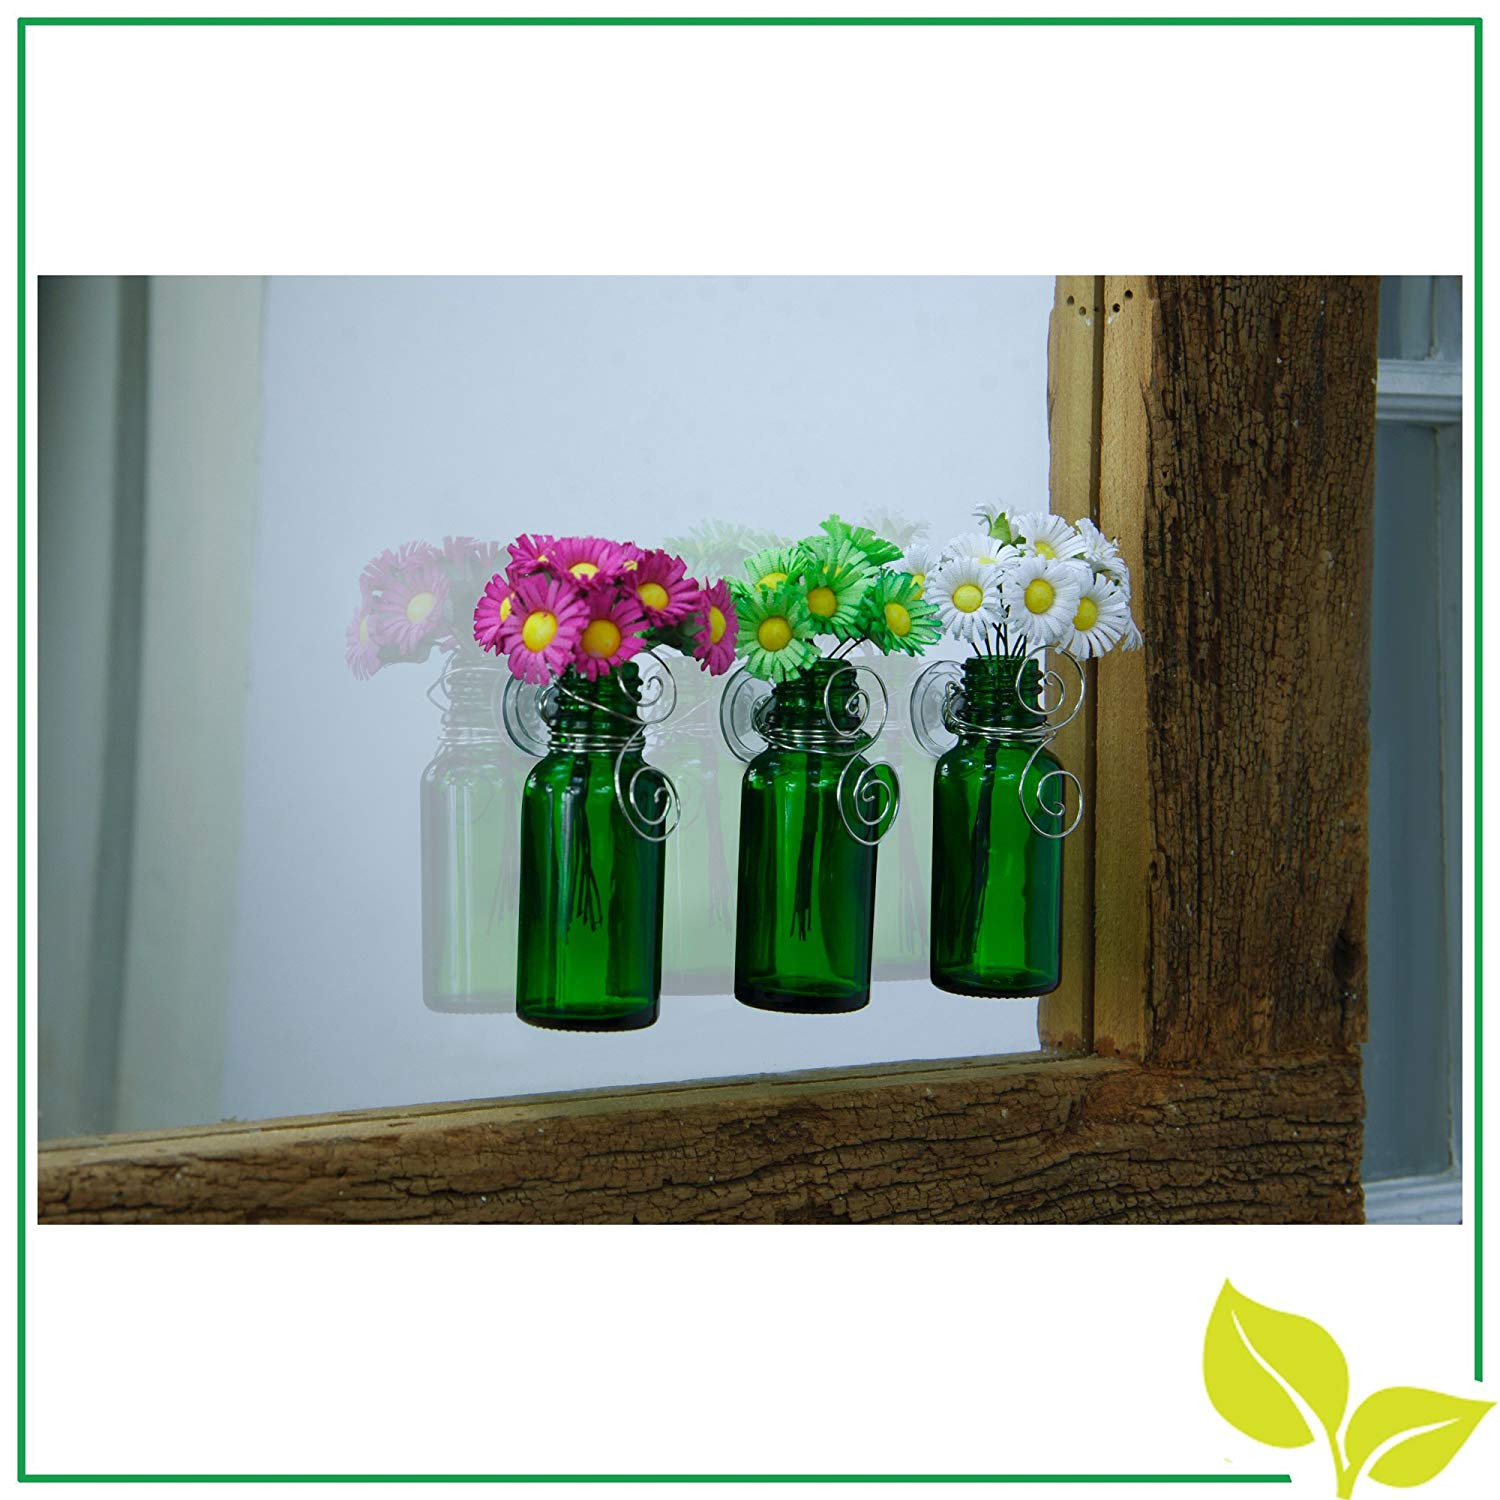 tall glass bottle vase of amazon com vazzini mini vase bouquet suction cup bud bottle regarding amazon com vazzini mini vase bouquet suction cup bud bottle holder with flowers decorative for window mirrors tile wedding party favor get well